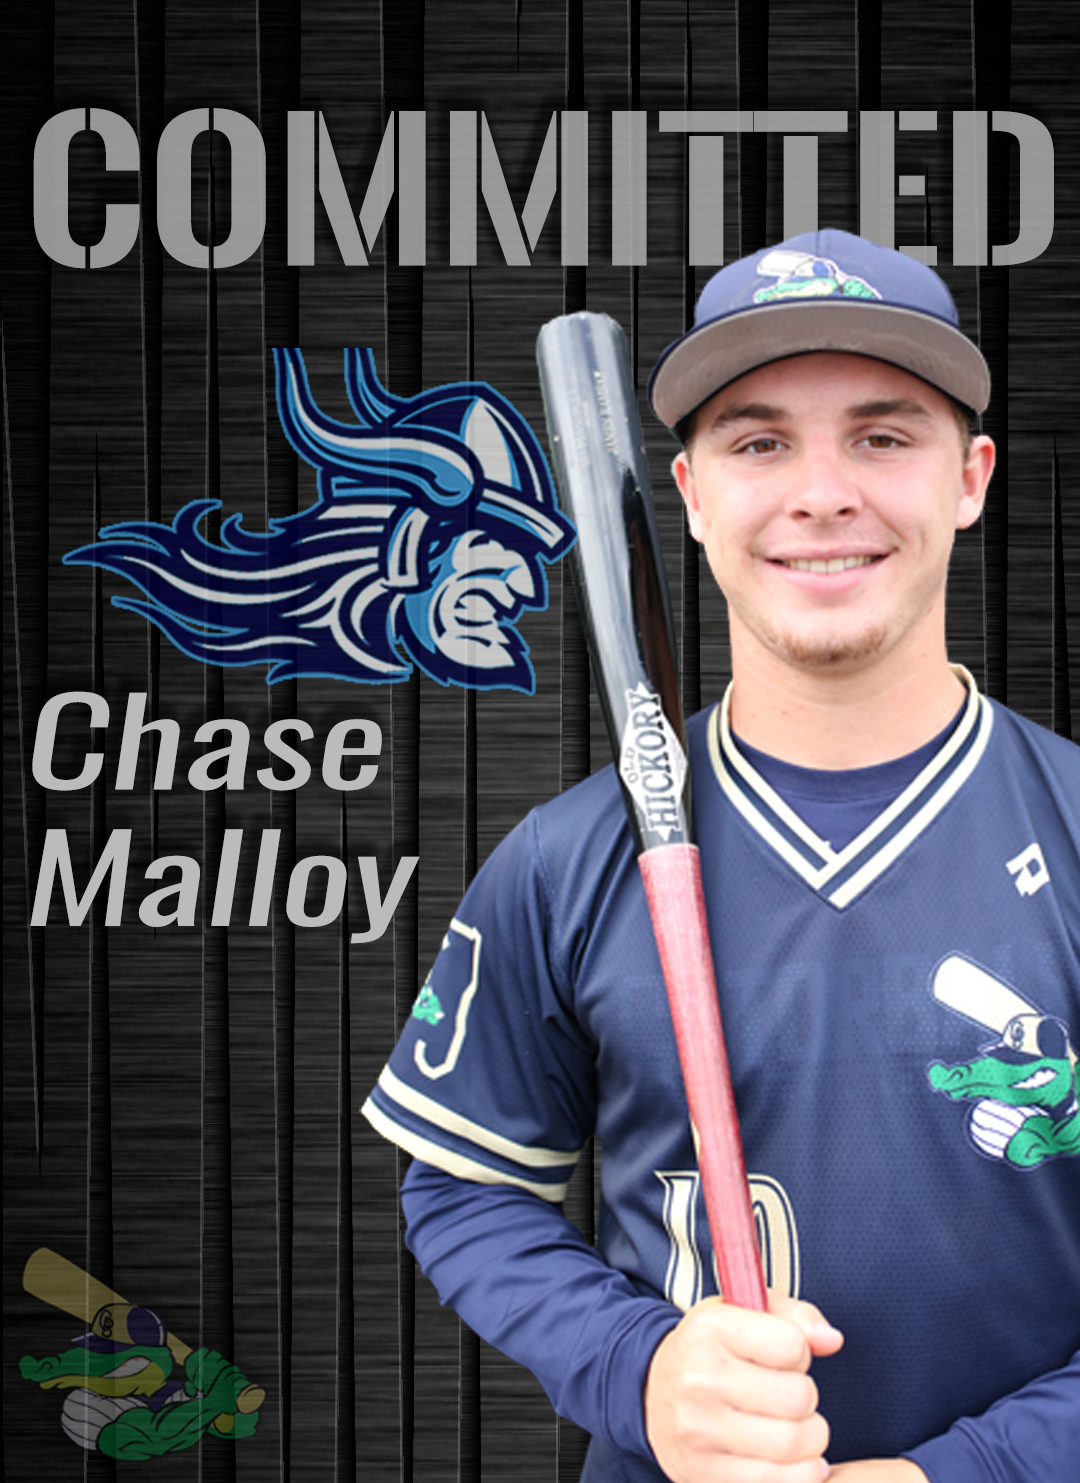 Chase Malloy